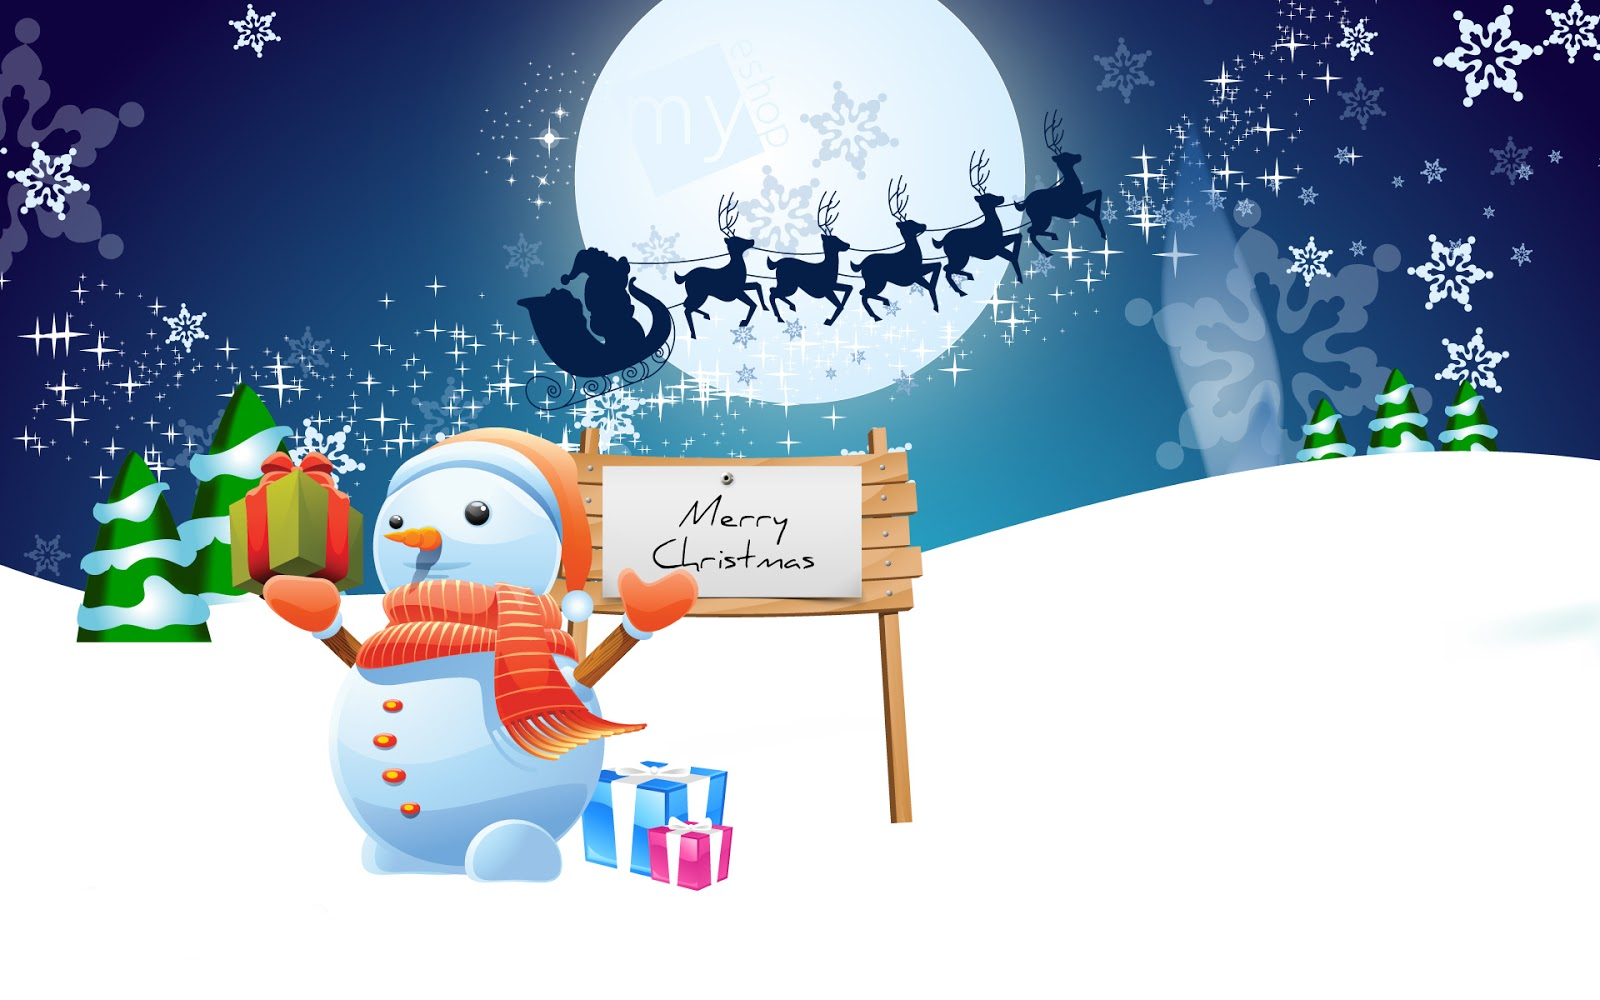 latest} happy merry christmas images 2017 for facebook and whatsappp